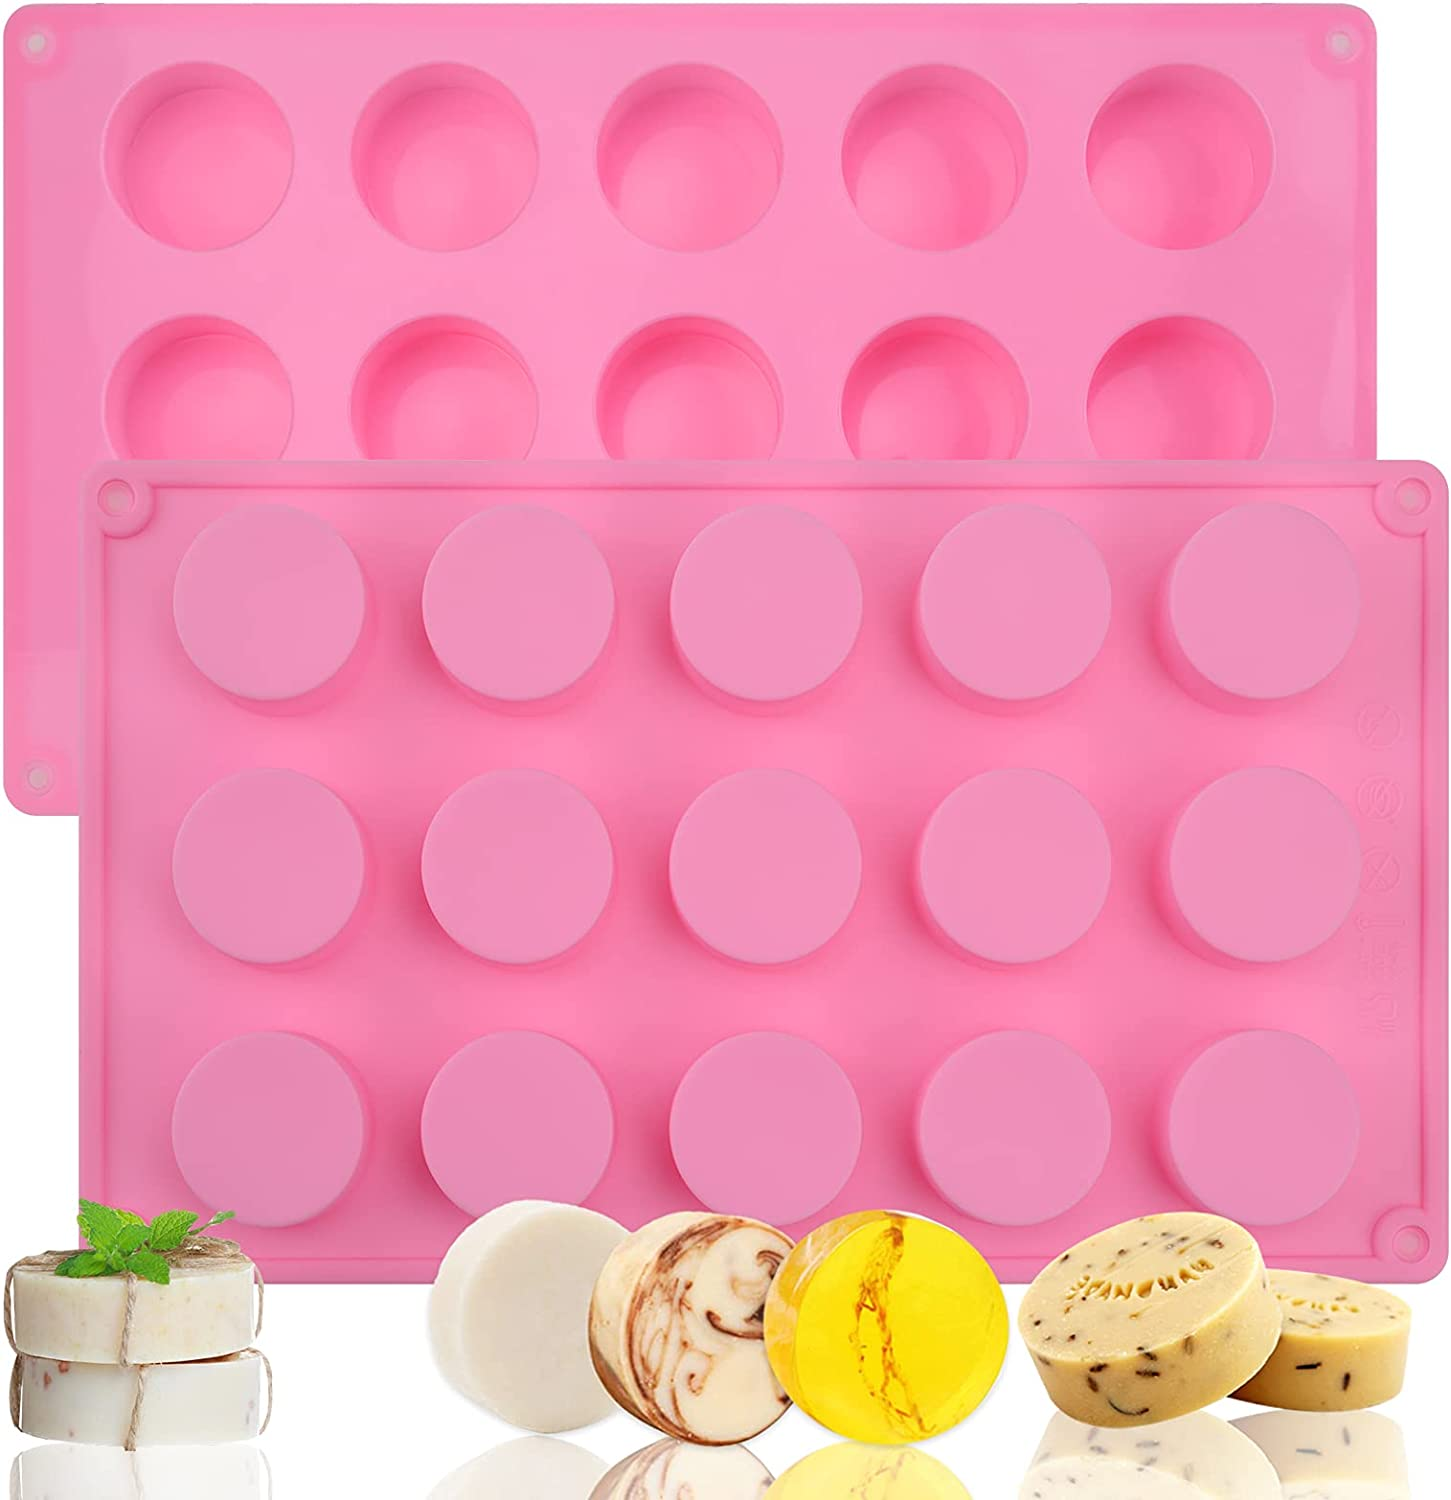 Cylinder Silicone Soap Mold, 2 Pack 15 Cavity Round Silicone Molds for Handmade Soap, Lotion Bars, Bath Bombs, Chocolate, Cake